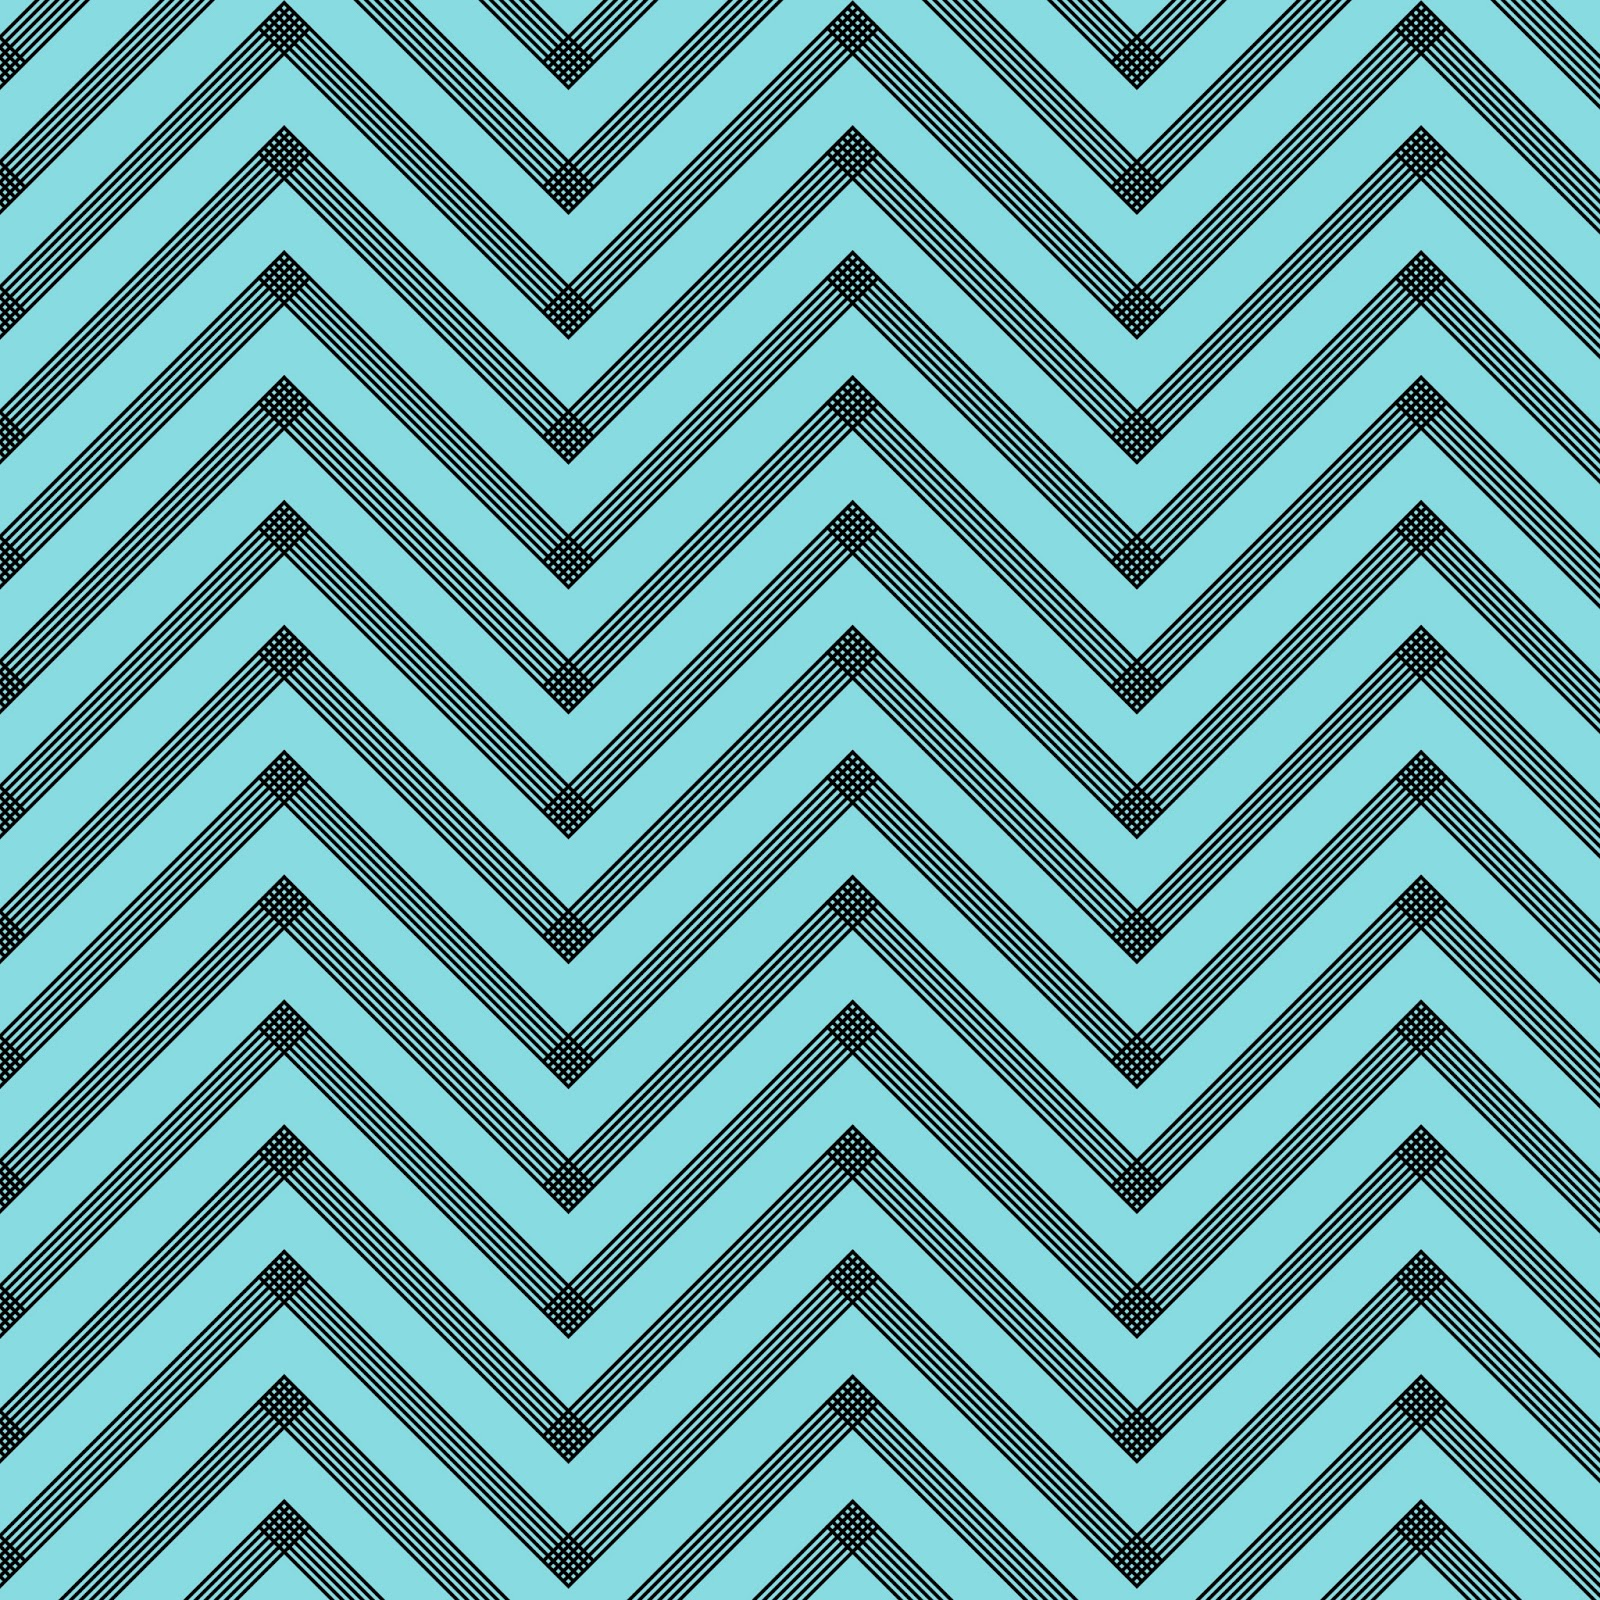 Chevron Pattern Wallpaper http://doodlecraft.blogspot.com/2013/05/free-sketchy-chevron-background-freebies.html